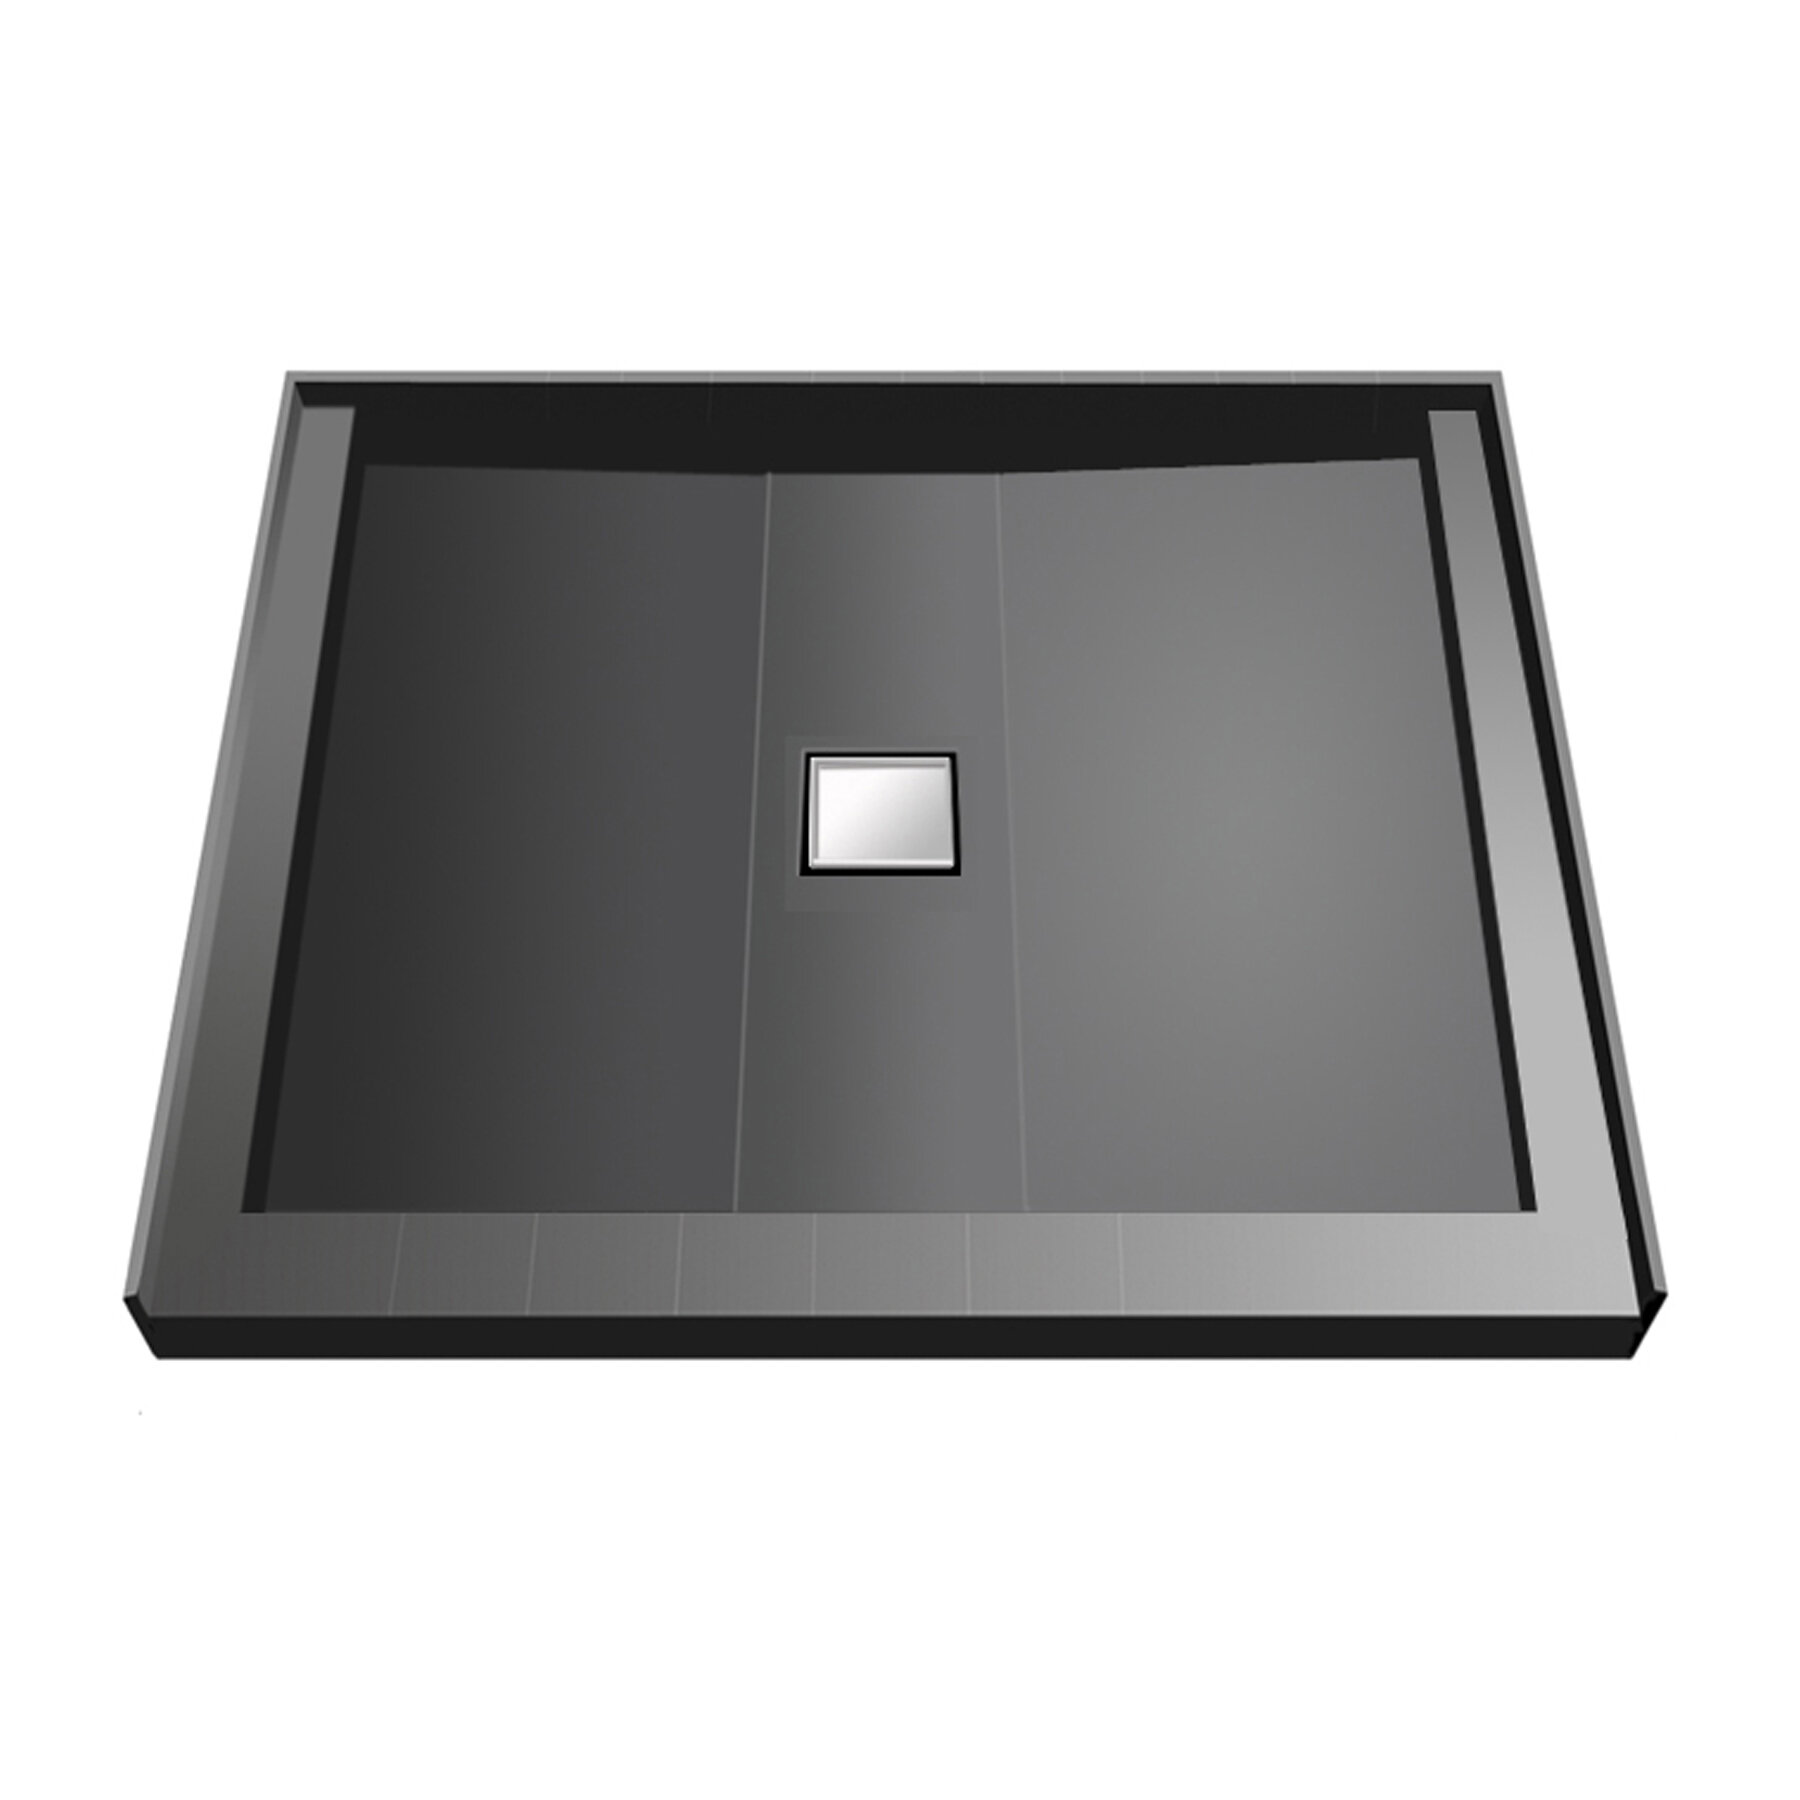 Tile Redi 36 X 36 Triple Threshold Shower Base With Drain Top